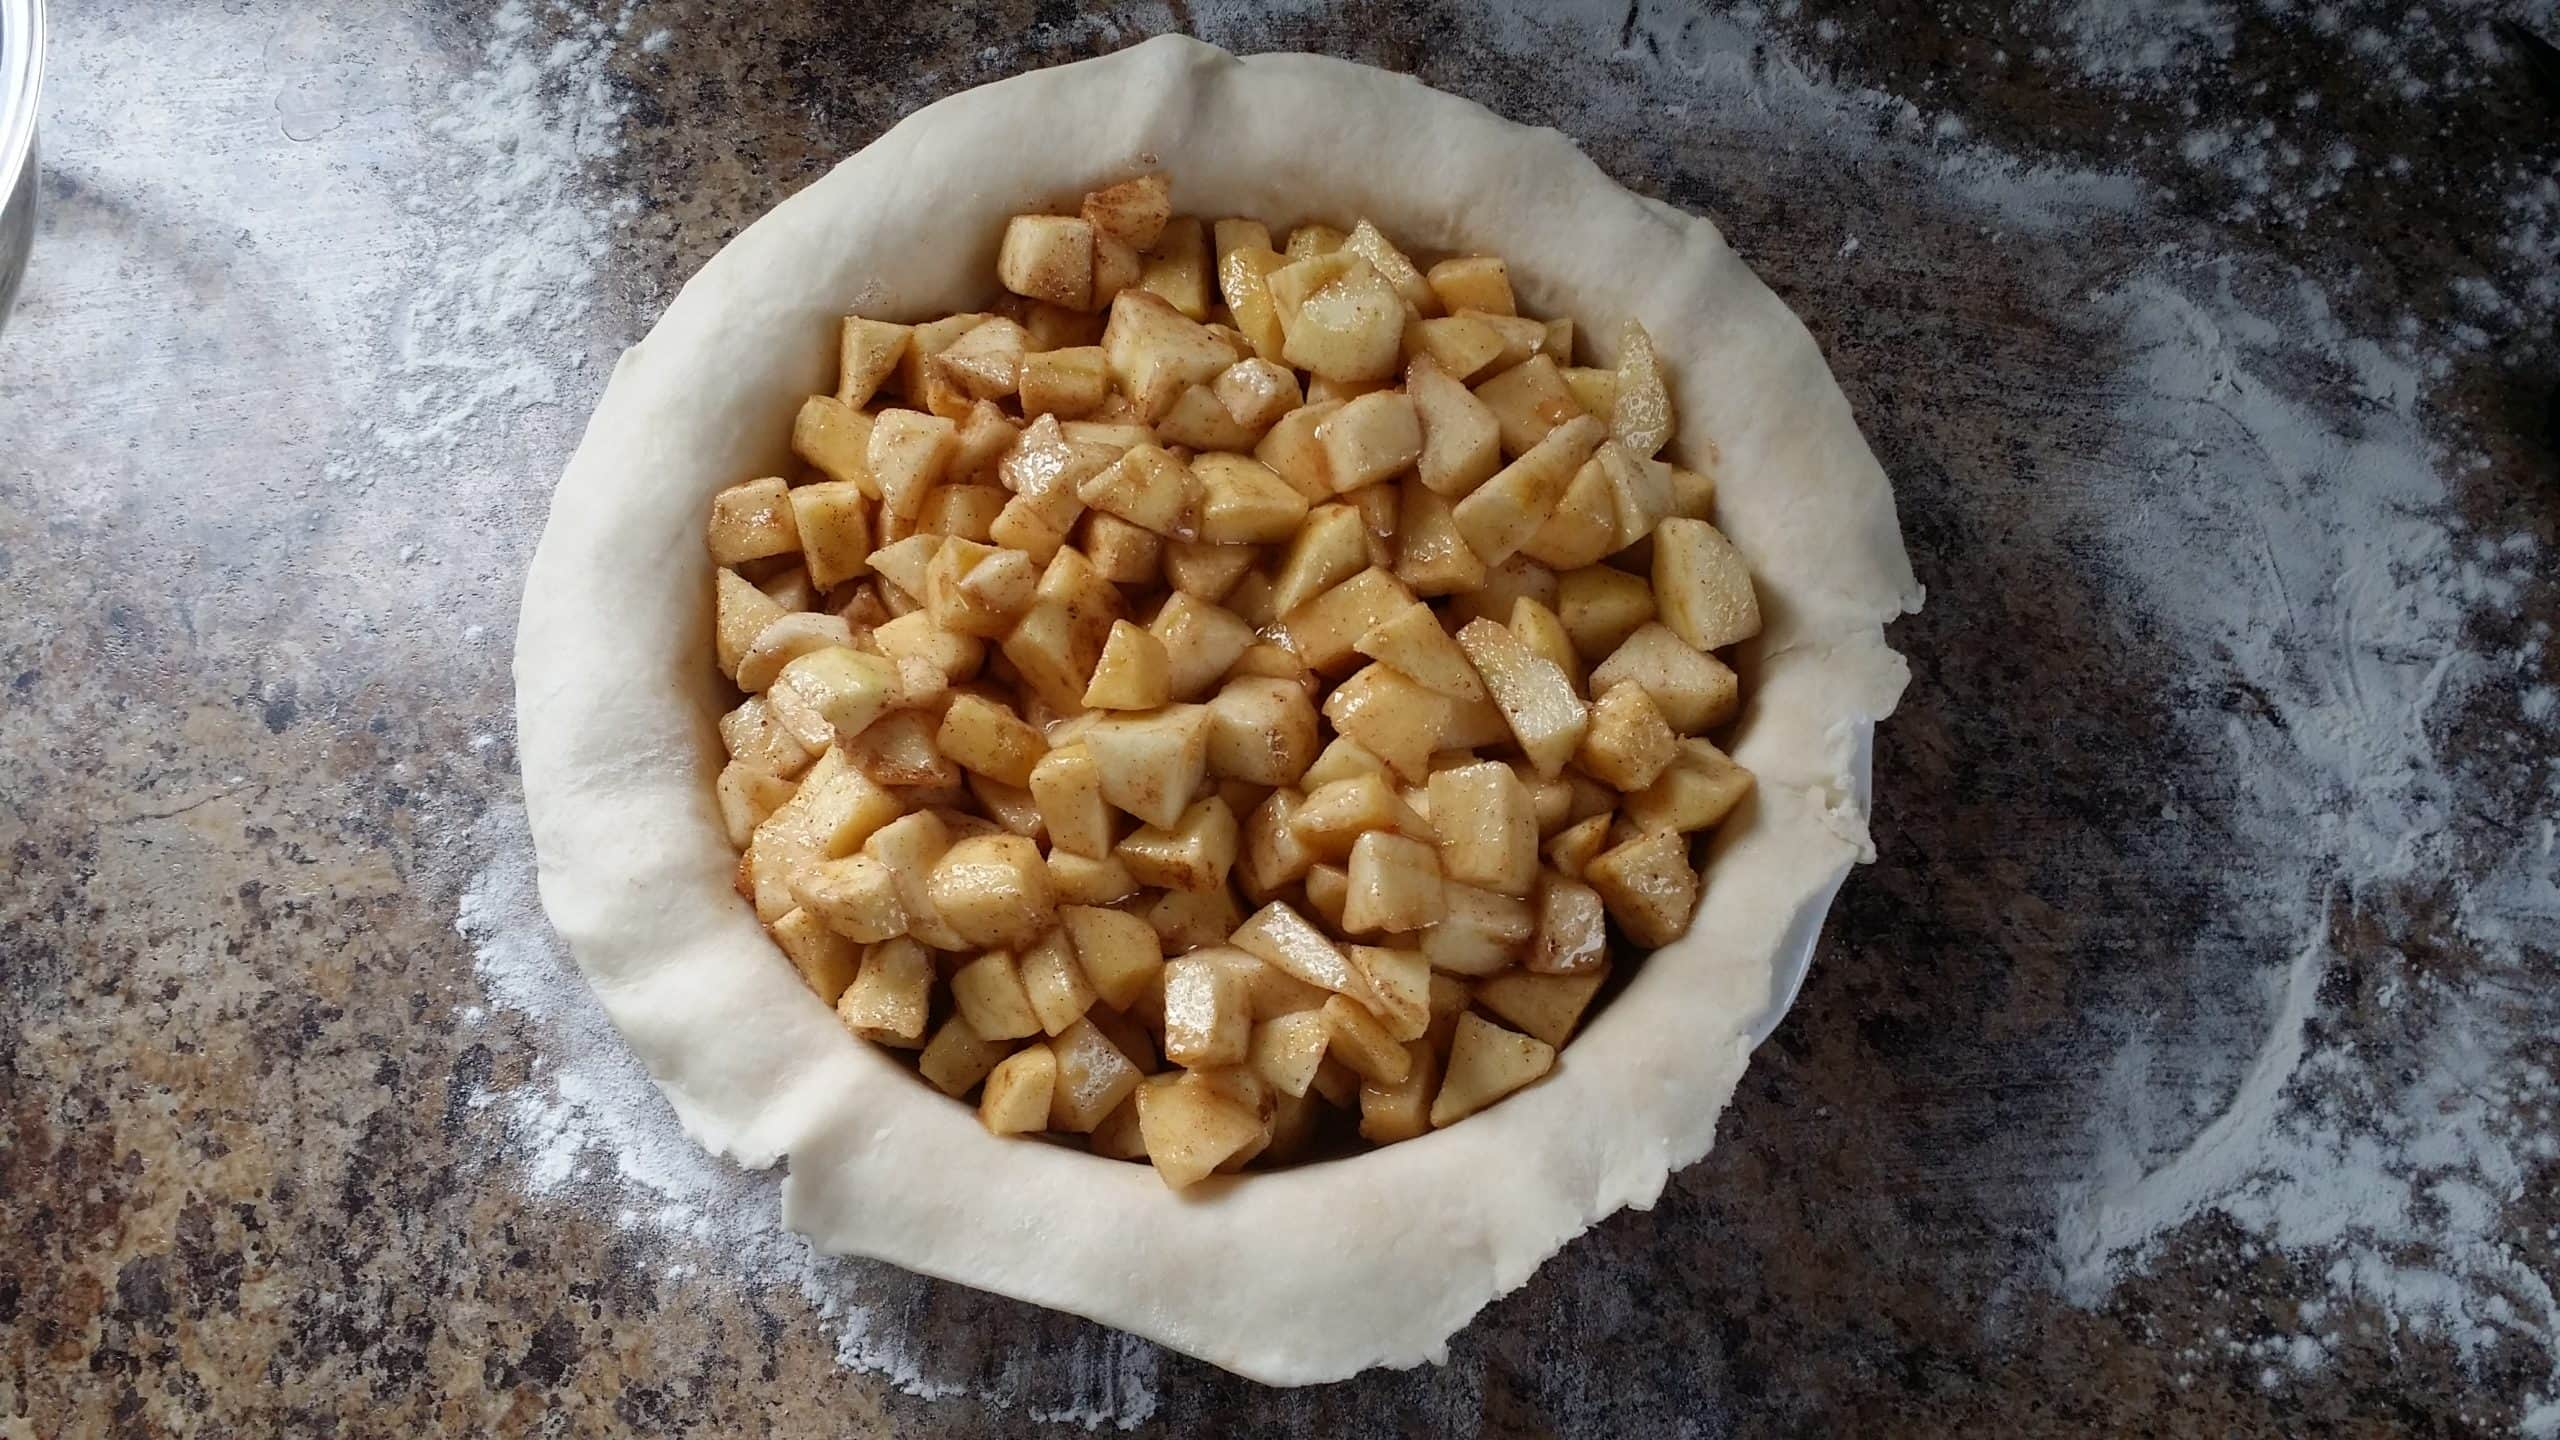 Apple pie filling in a pie crust.